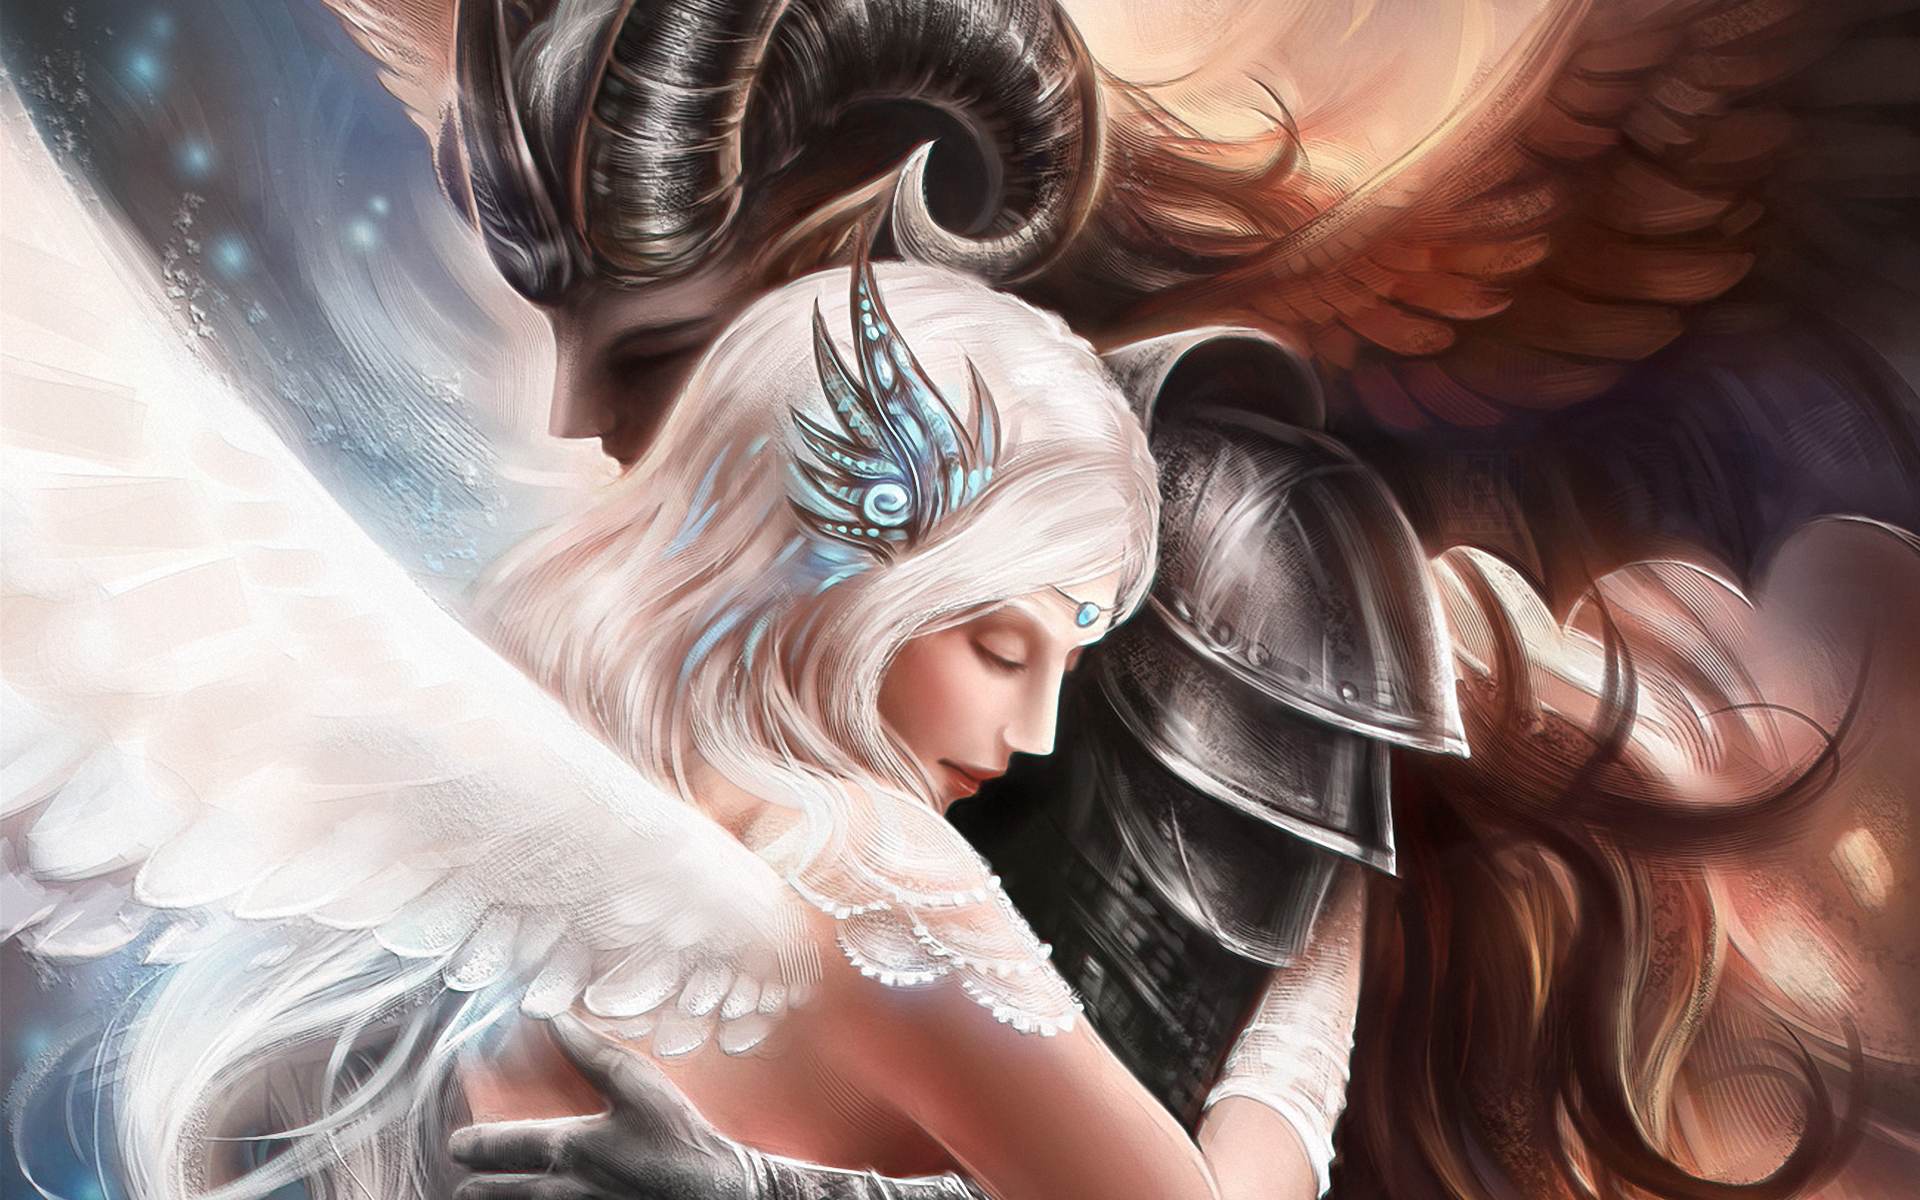 Demon angel love